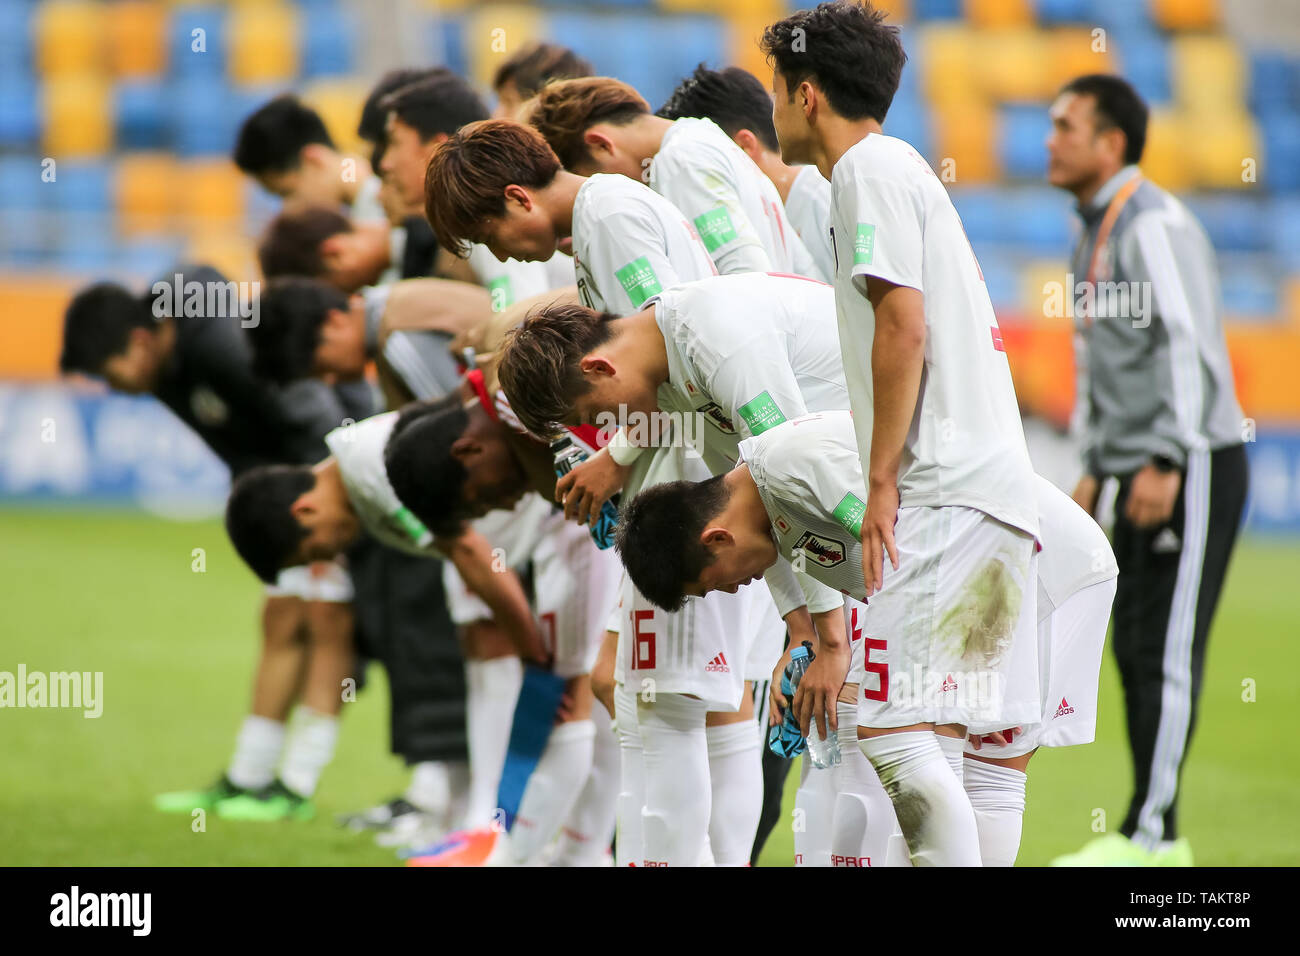 Gdynia Stadium, Gdynia, Poland - 26th May, 2019: National team of Japan are seen bowing in front of Japan fanes after FIFA U-20 World Cup match between Mexico and Japan (GROUP B) in Gdynia. (Final score; Mexico 0:3 Japan) - Stock Image